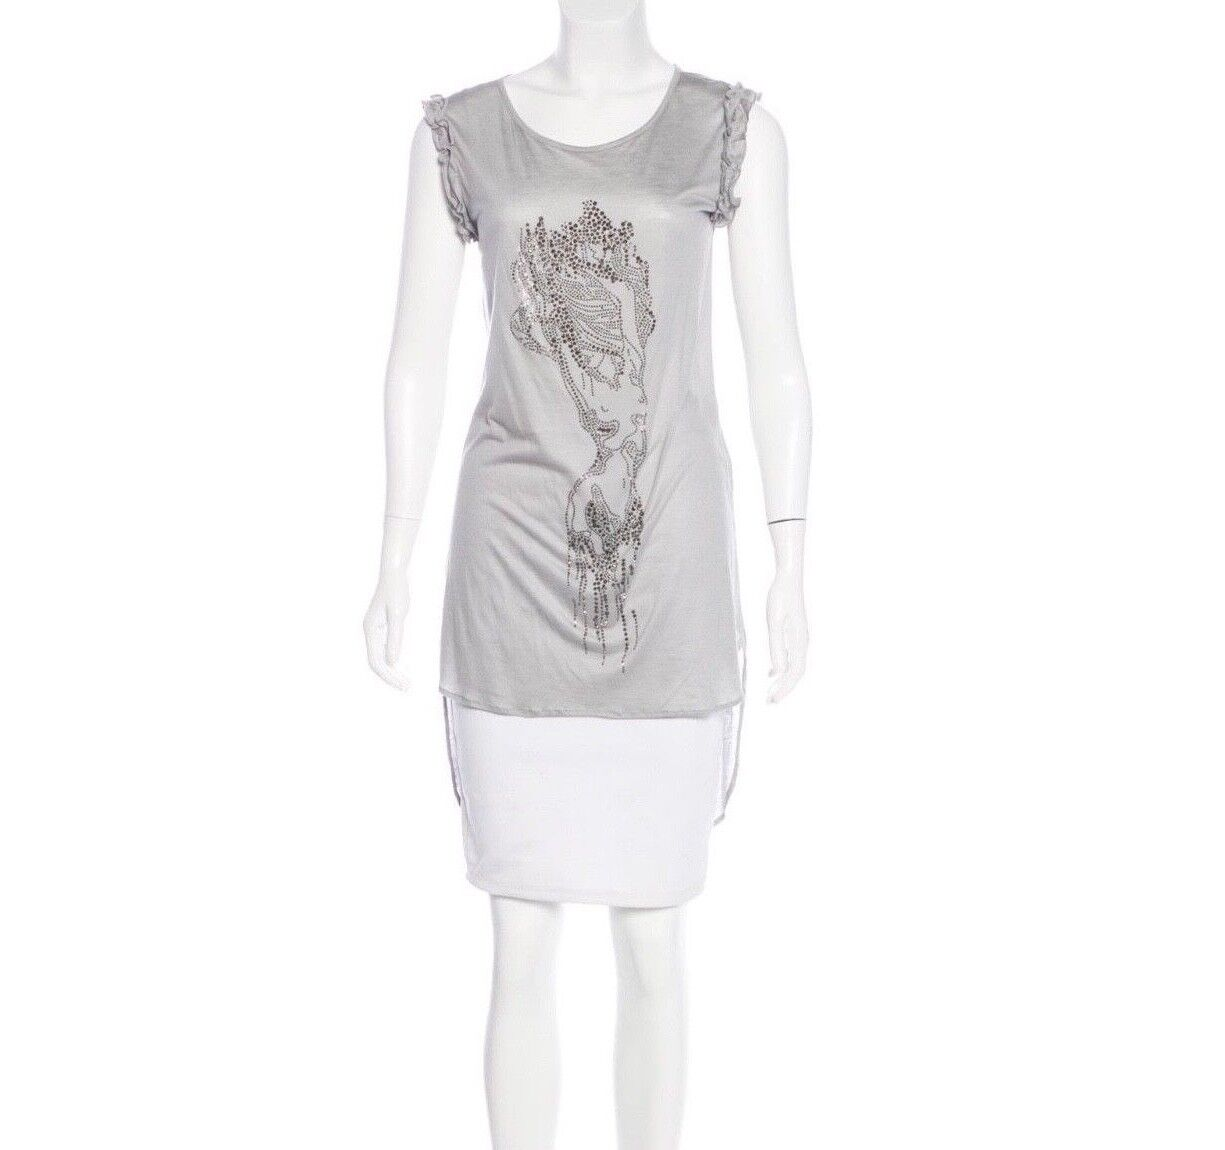 Thomas Wylde Grey Embellished Sleeveless Tunic Shirt, Dress New. Size L.